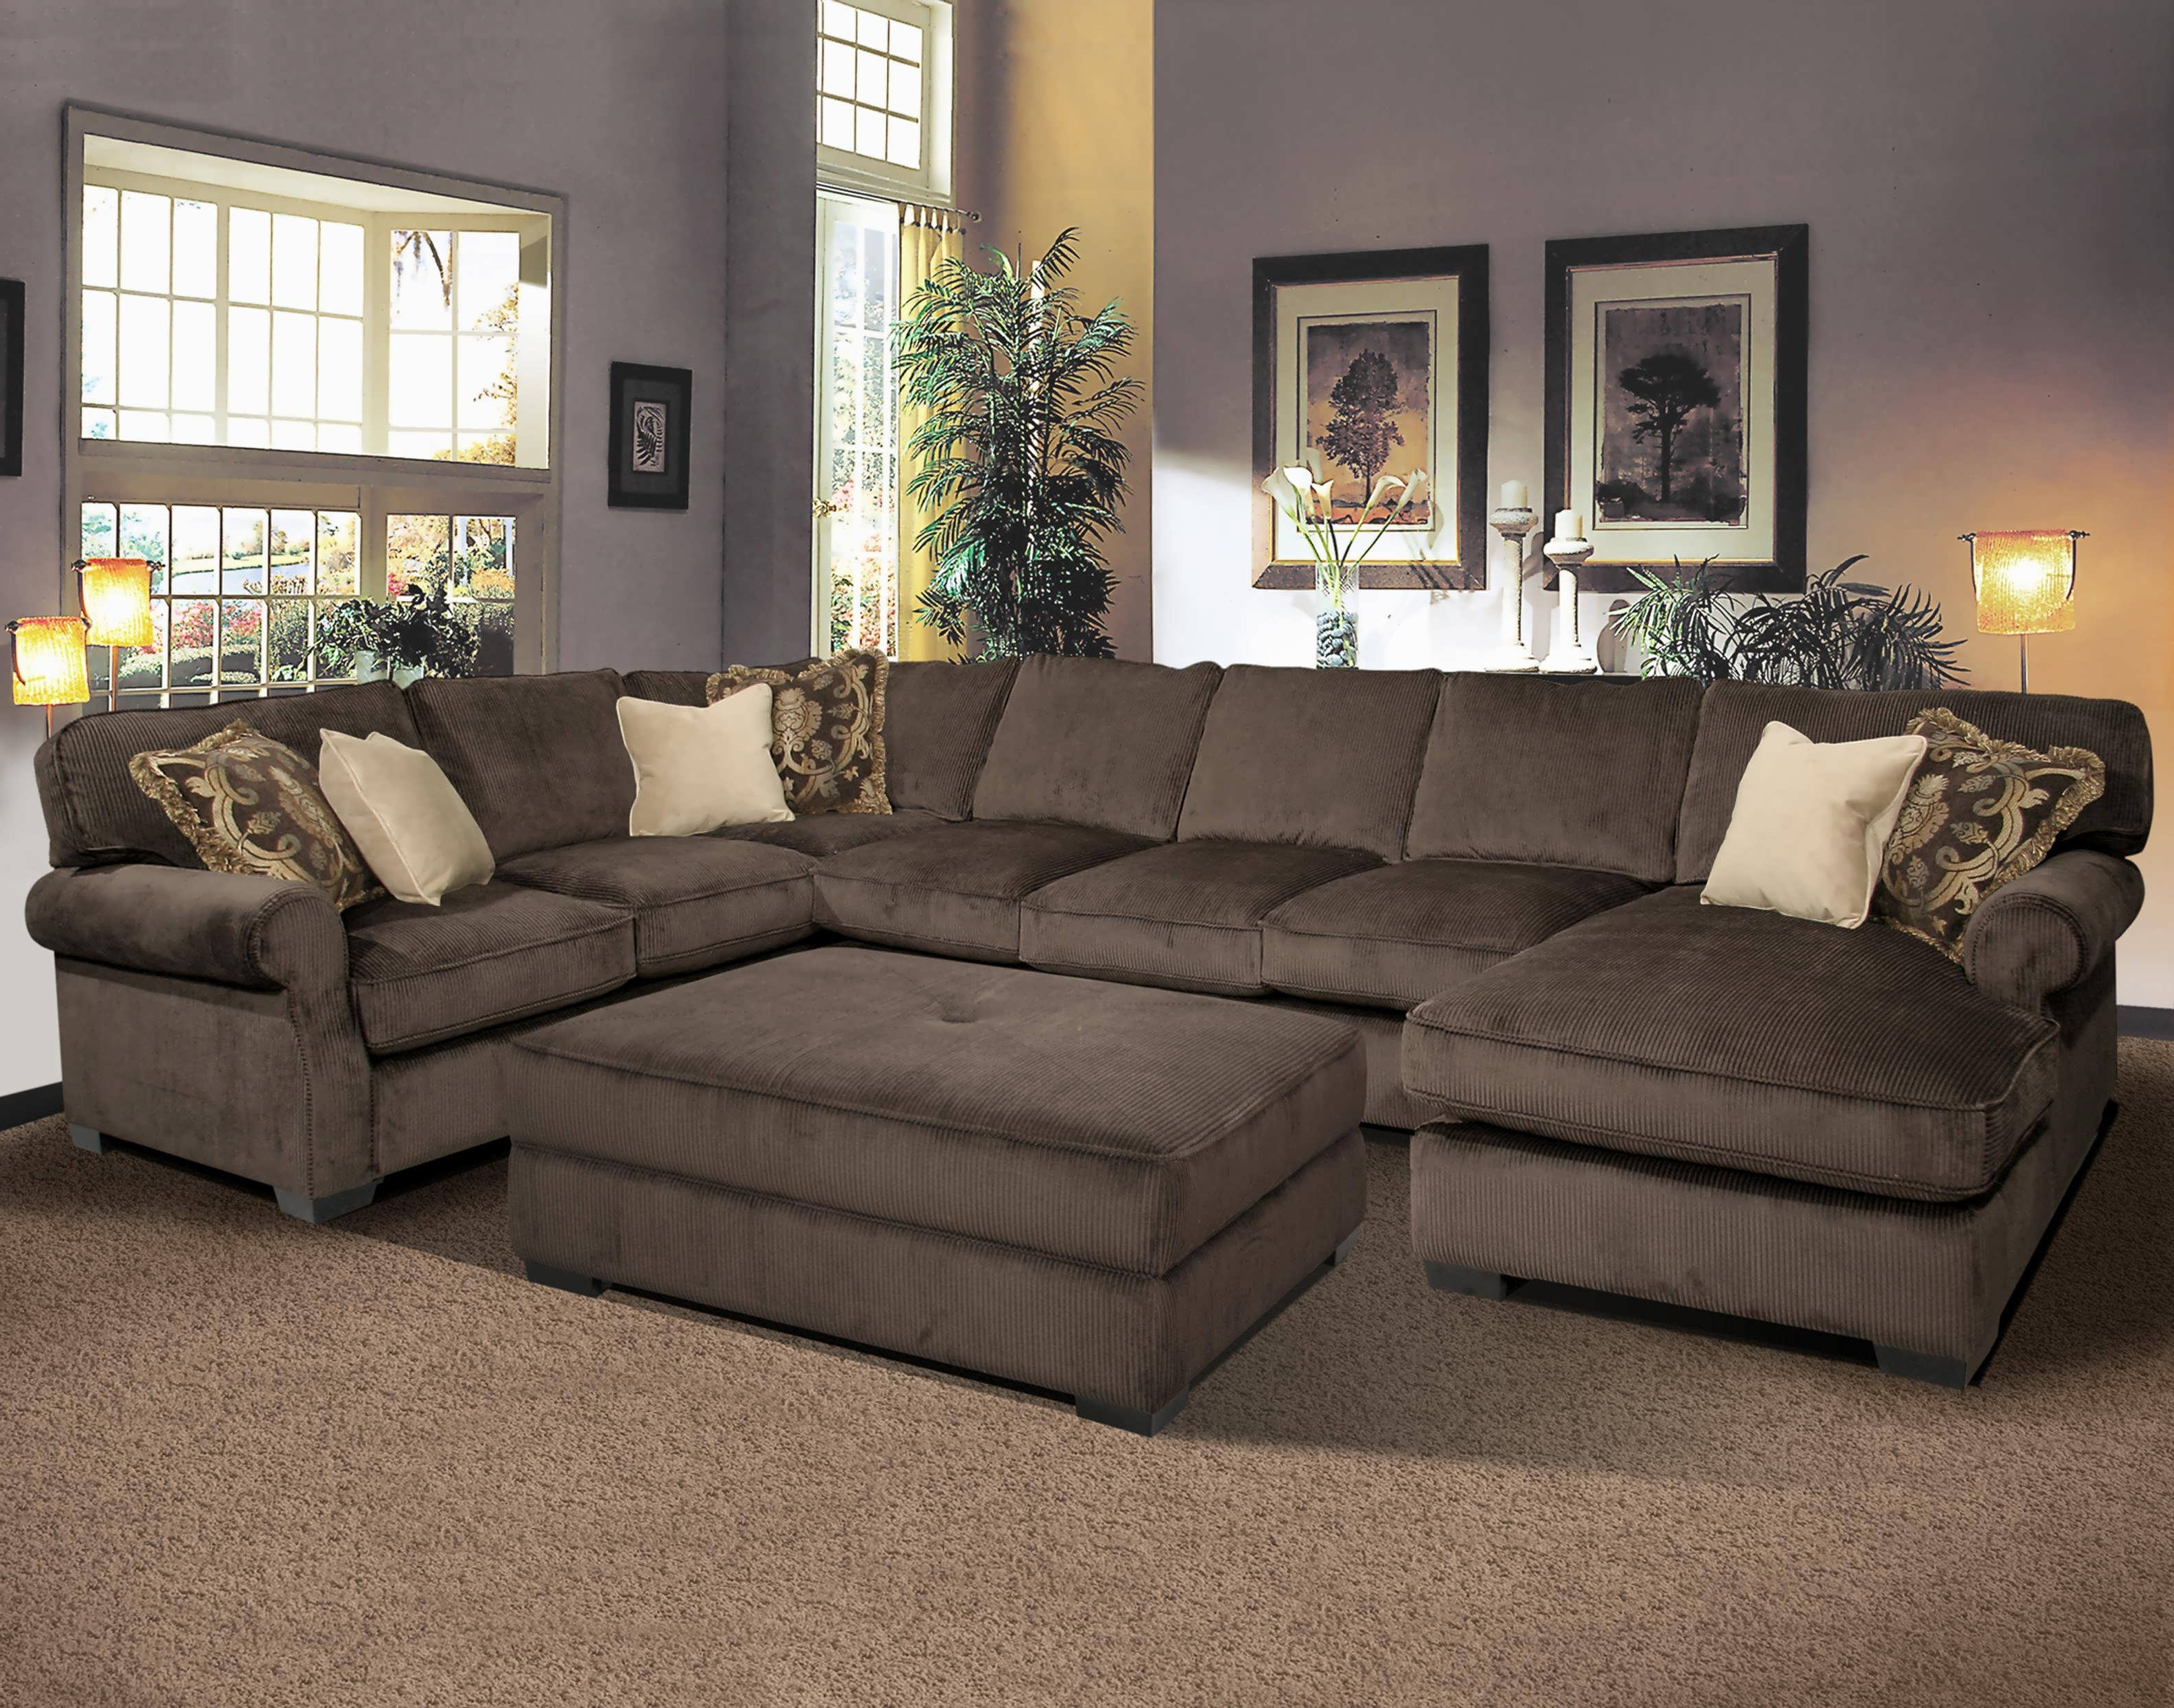 Most Recent Microfiber Sectionals With Chaise With Sofa : Leather Sectional Sofa Large Sectional Red Sectional Sofa (View 10 of 15)